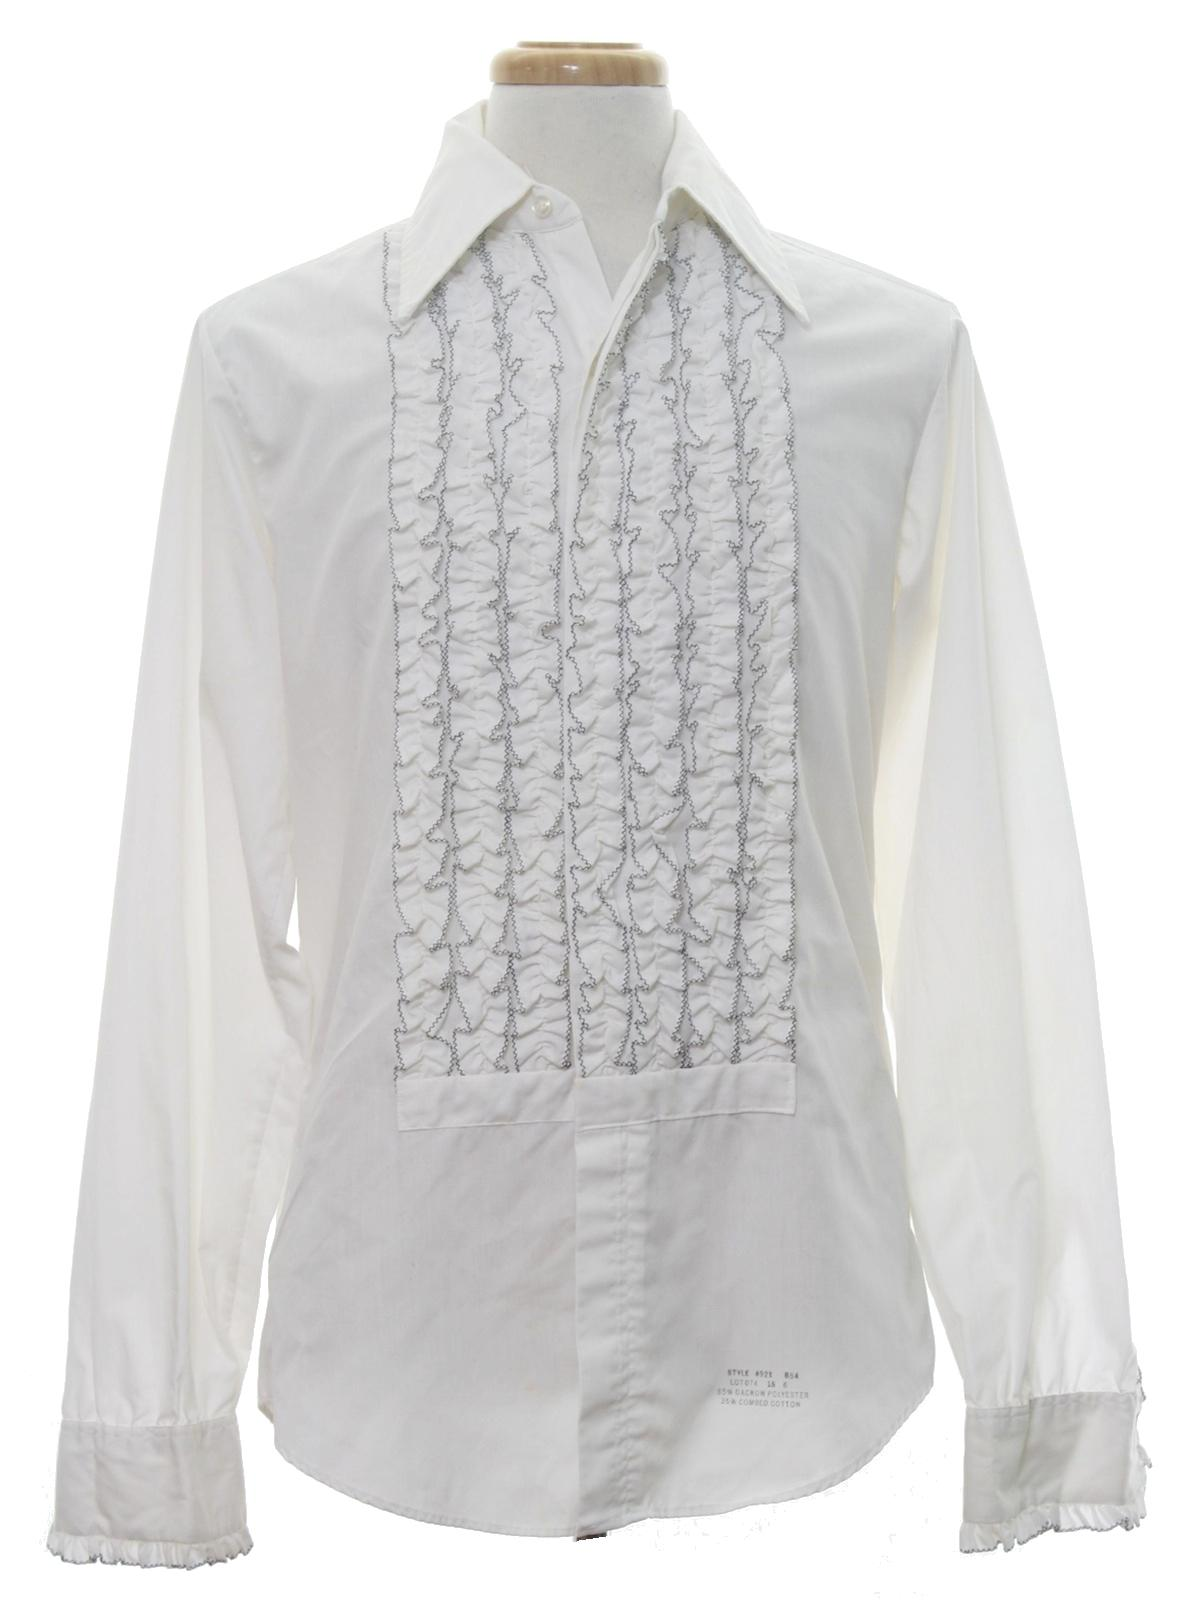 Delton 70 39 s vintage shirt 70s delton mens white cotton for Frilly shirts for men